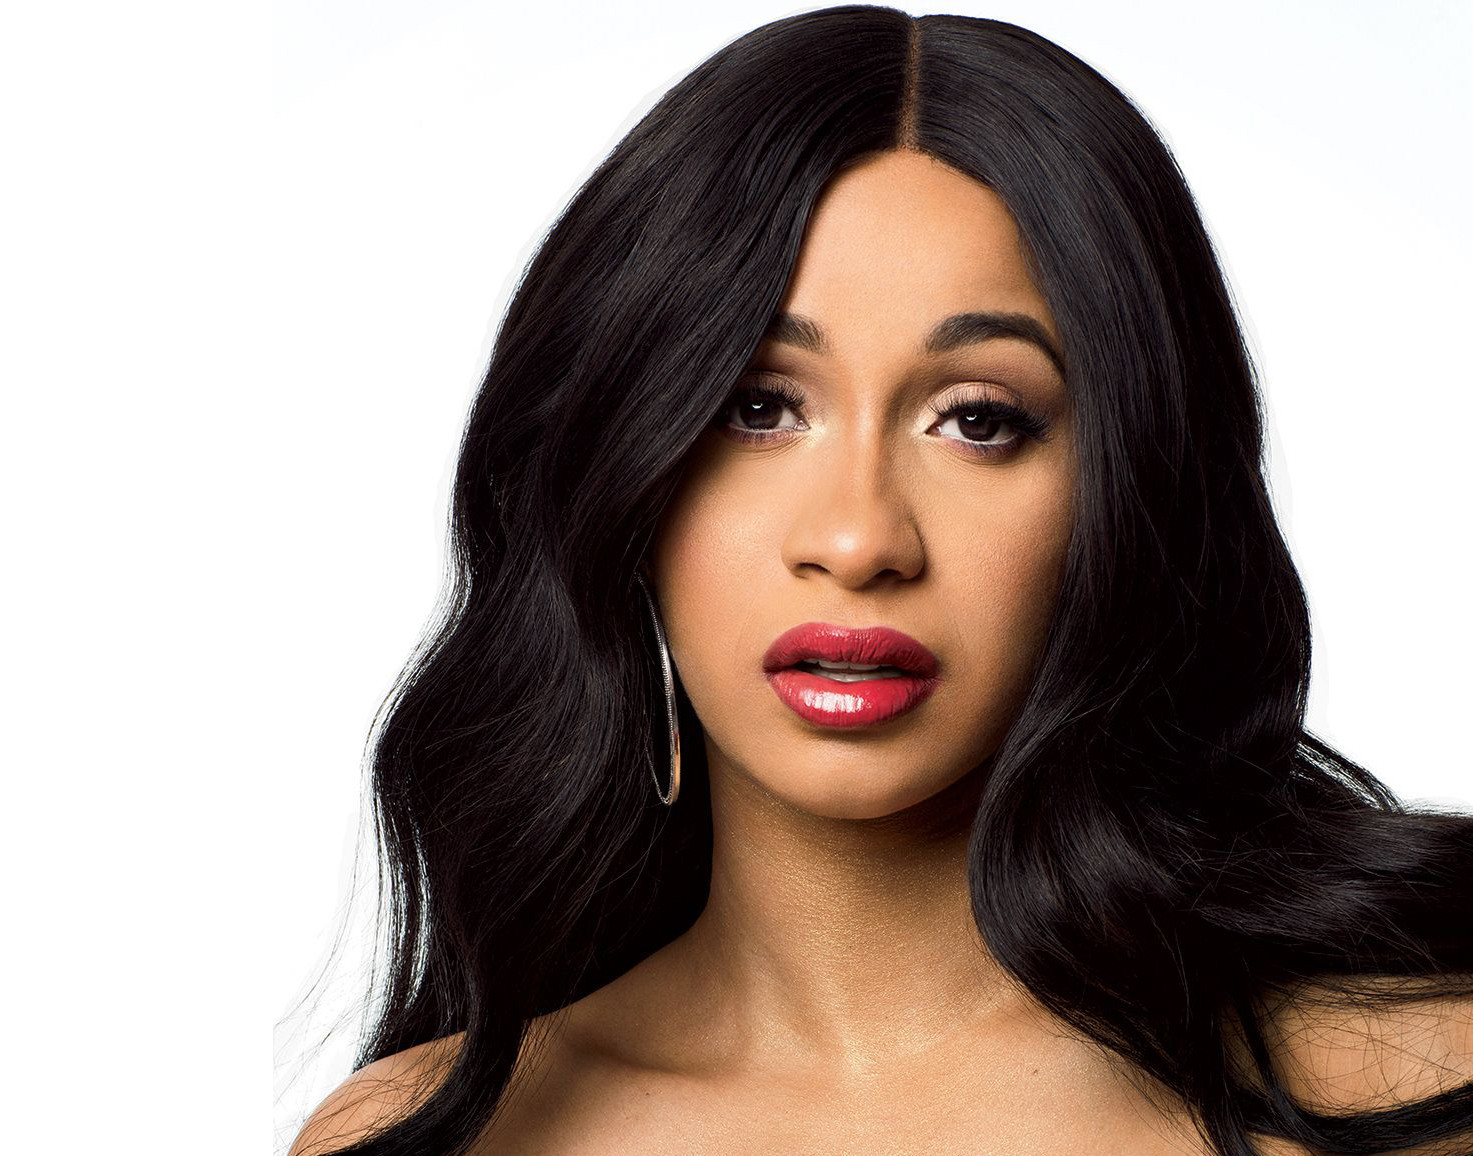 social-media-is-shocked-after-cardi-b-called-her-fans-dumba-and-telling-them-to-stay-in-their-place